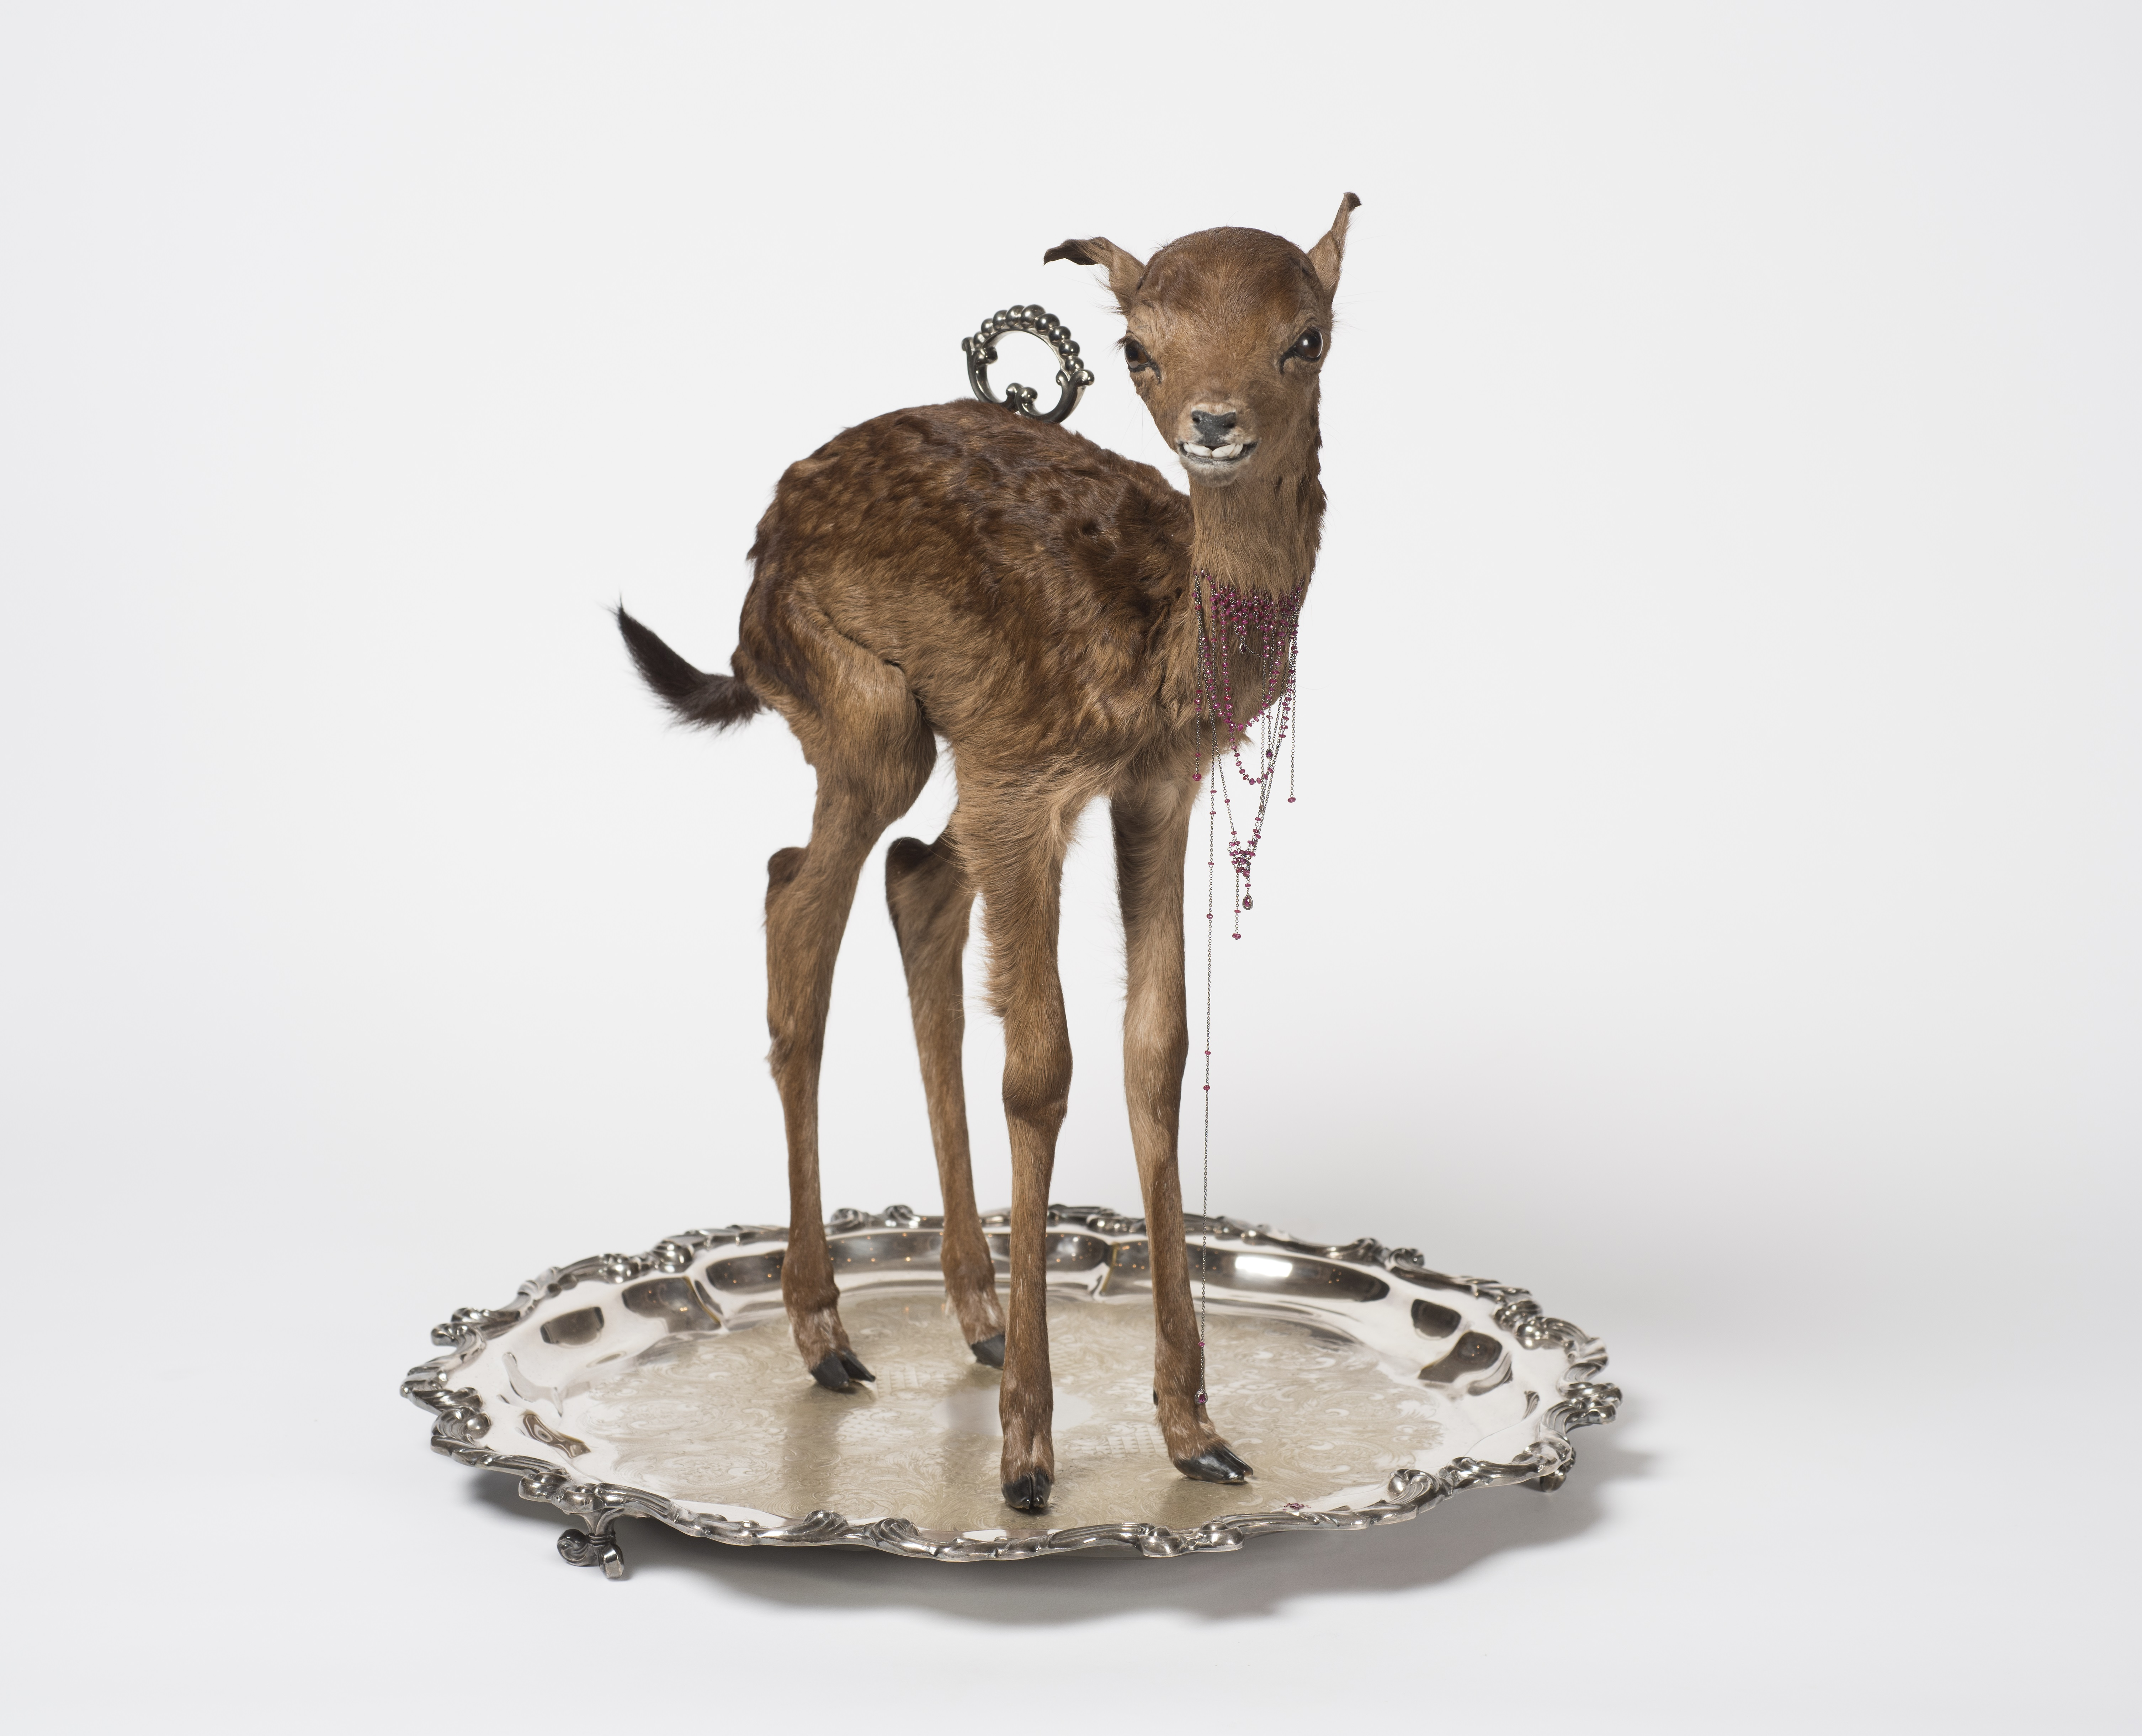 Julia deVille, **Sentience** 2012, stillborn deer, rubies 18.45 ct, pear-cut garnet 0.7 ct, 18 ct, white gold, sterling silver, bronze, black rhodium and antique platter. Collection Bendigo Art Gallery. Photo: Terence Bogue. Image reproduced courtesy of the artist.